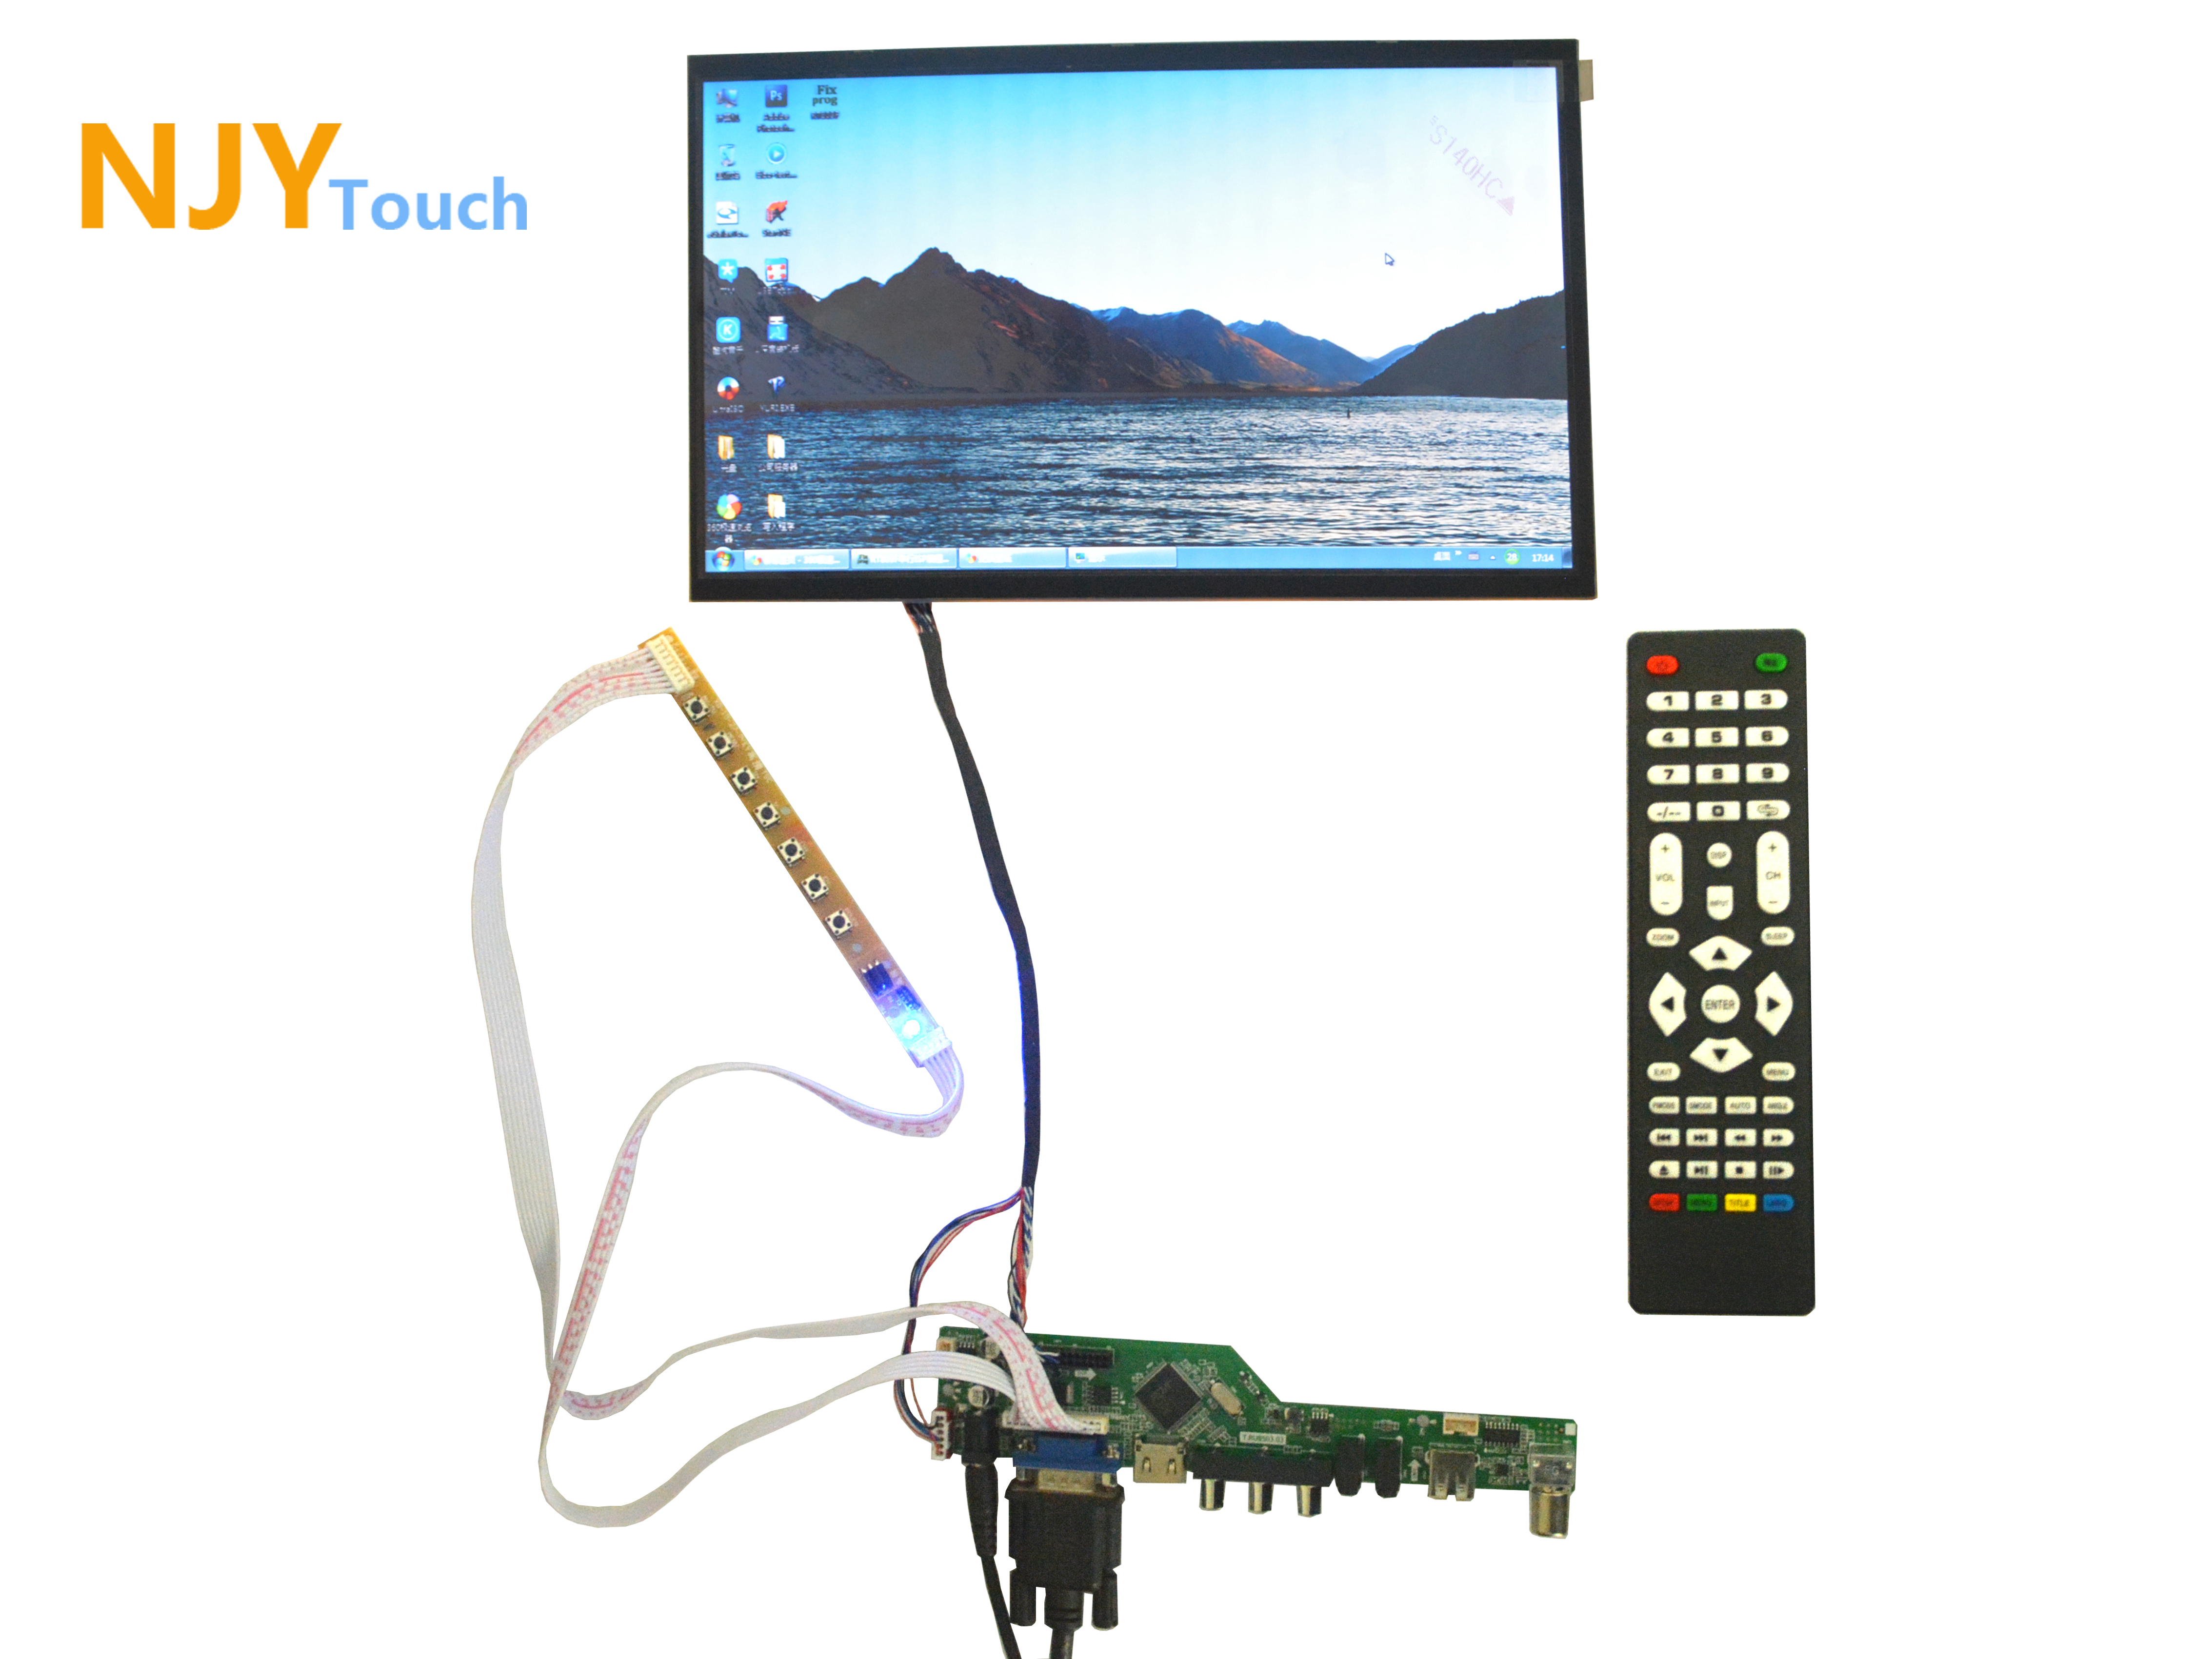 NJYTouch TV HDMI VGA AV USB AUDIO LCD Controller Board With 11.6inch B116XW02 1366x768 40Pin LED Screen